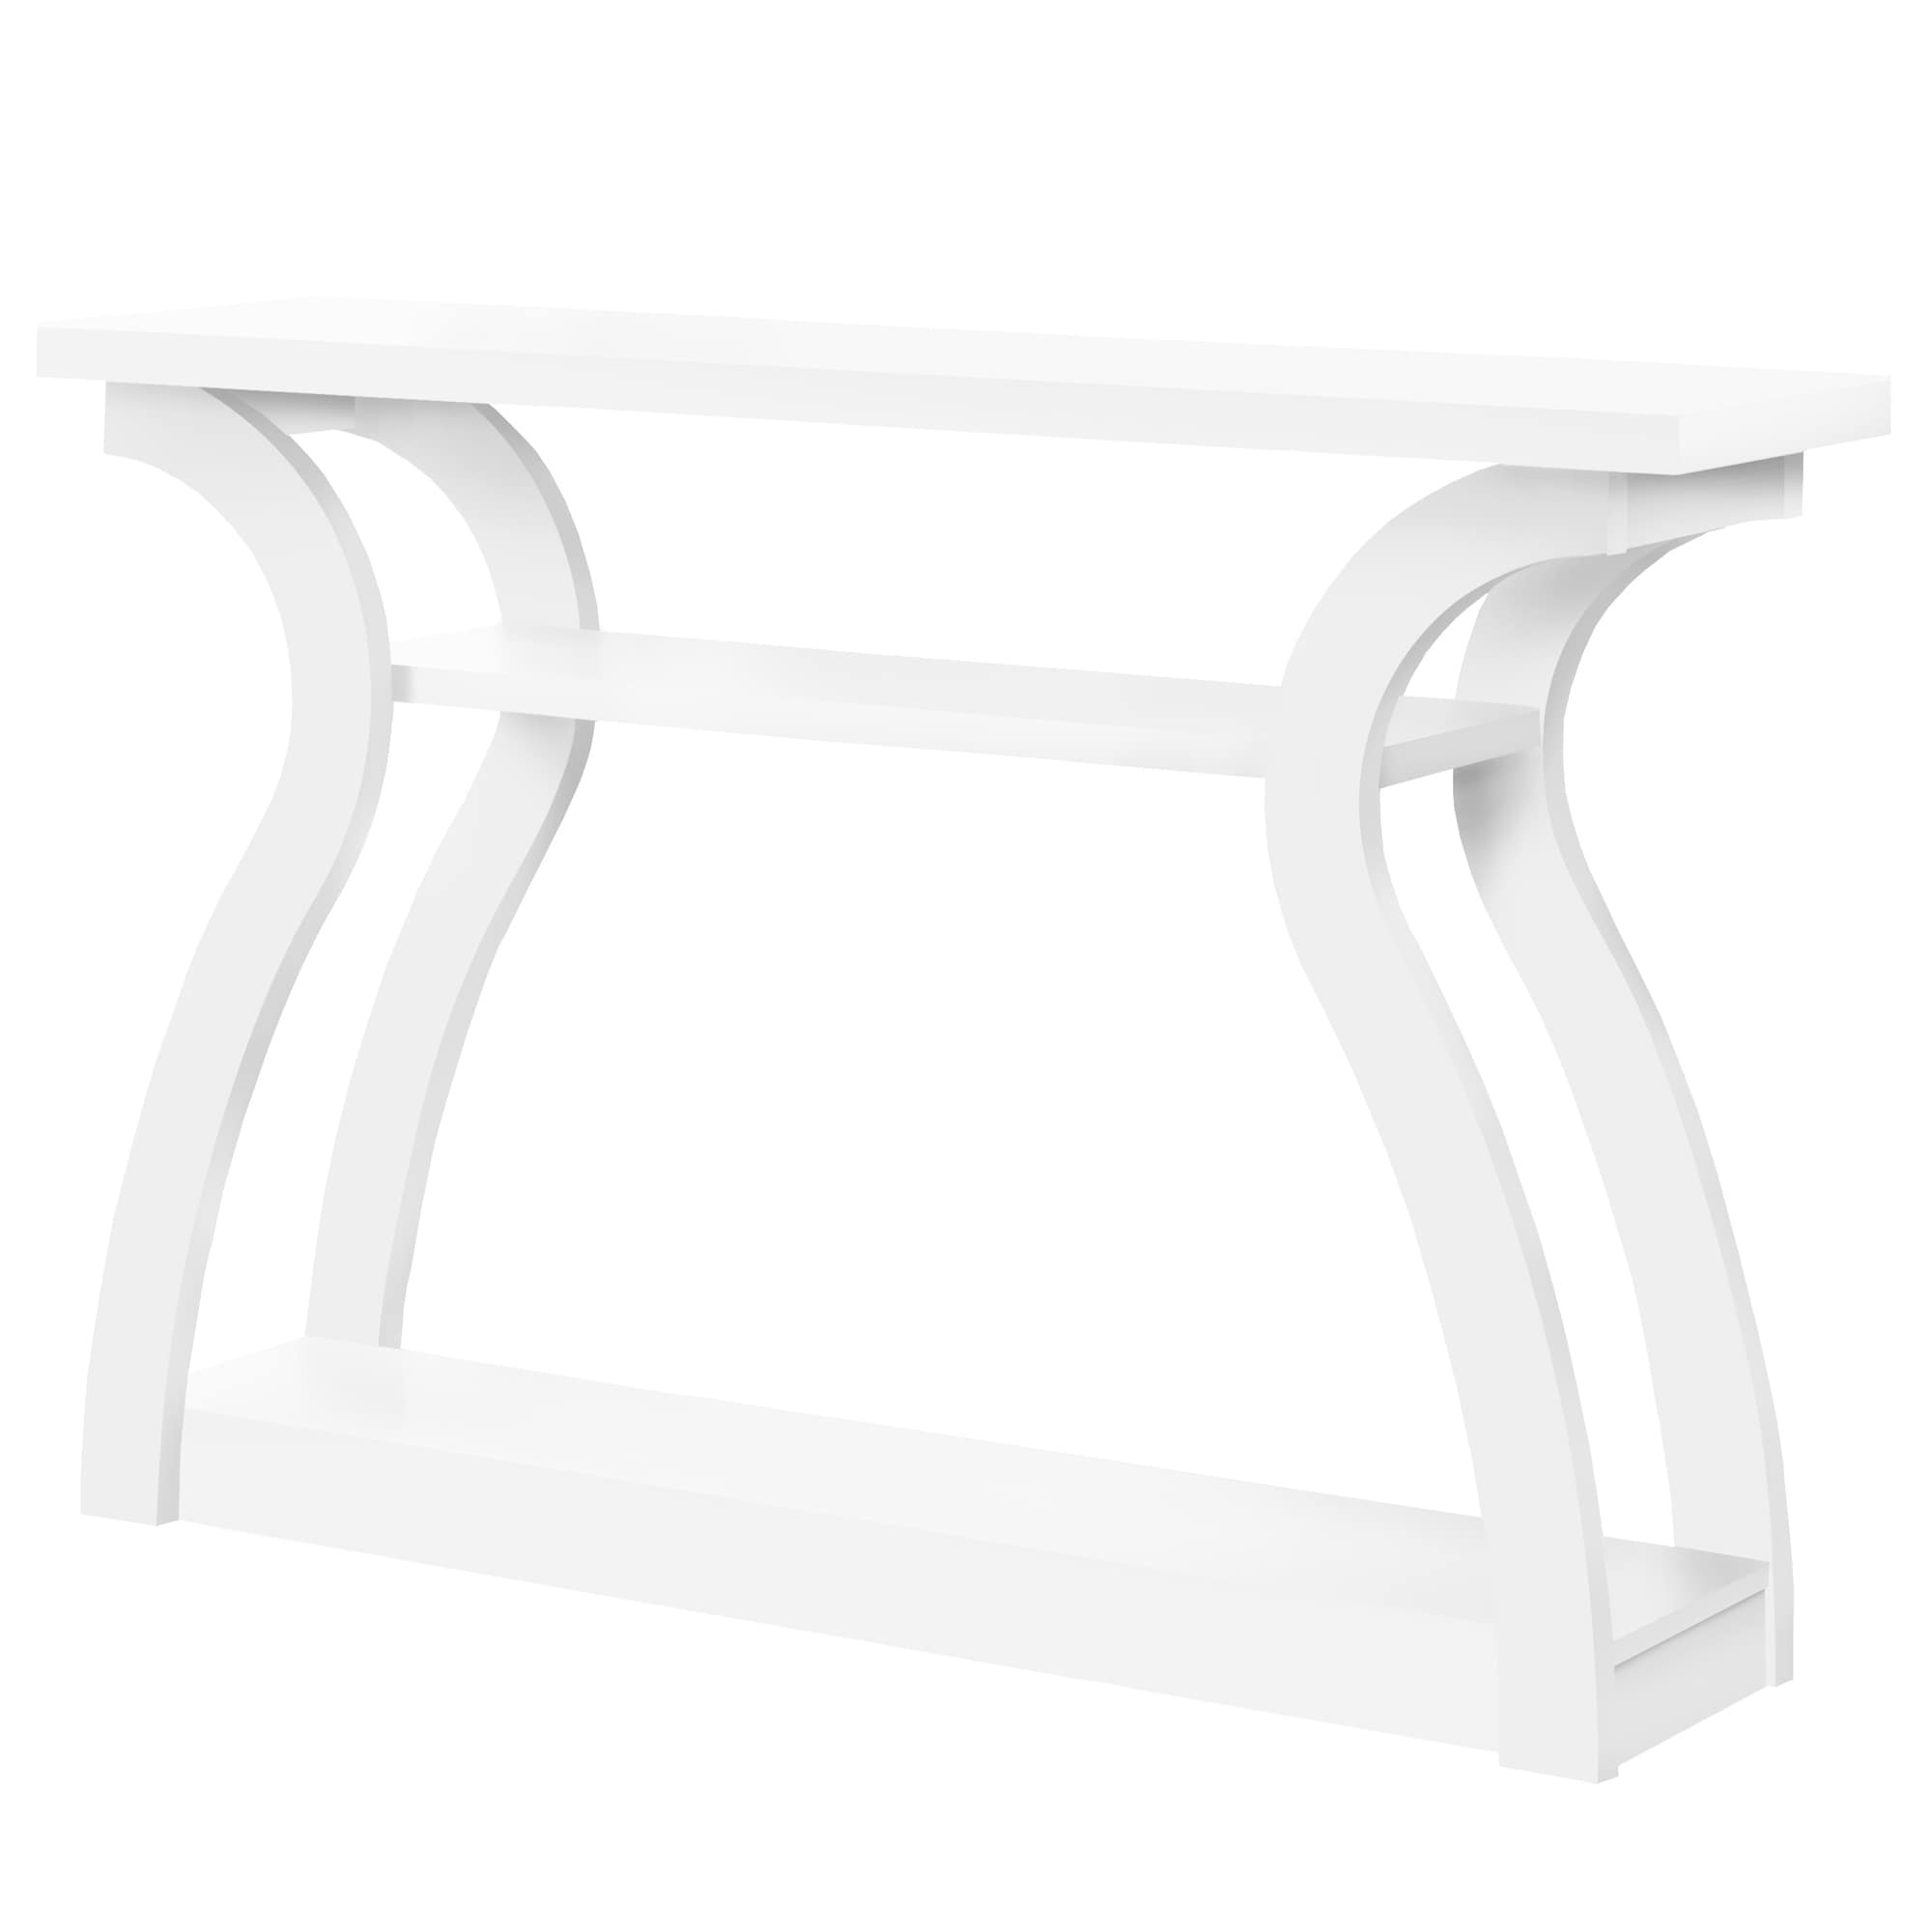 accent table white hall console free shipping today glass end with shelf farmhouse dining room furniture nightstand galvanized metal side navy blue sofa stools set high top round